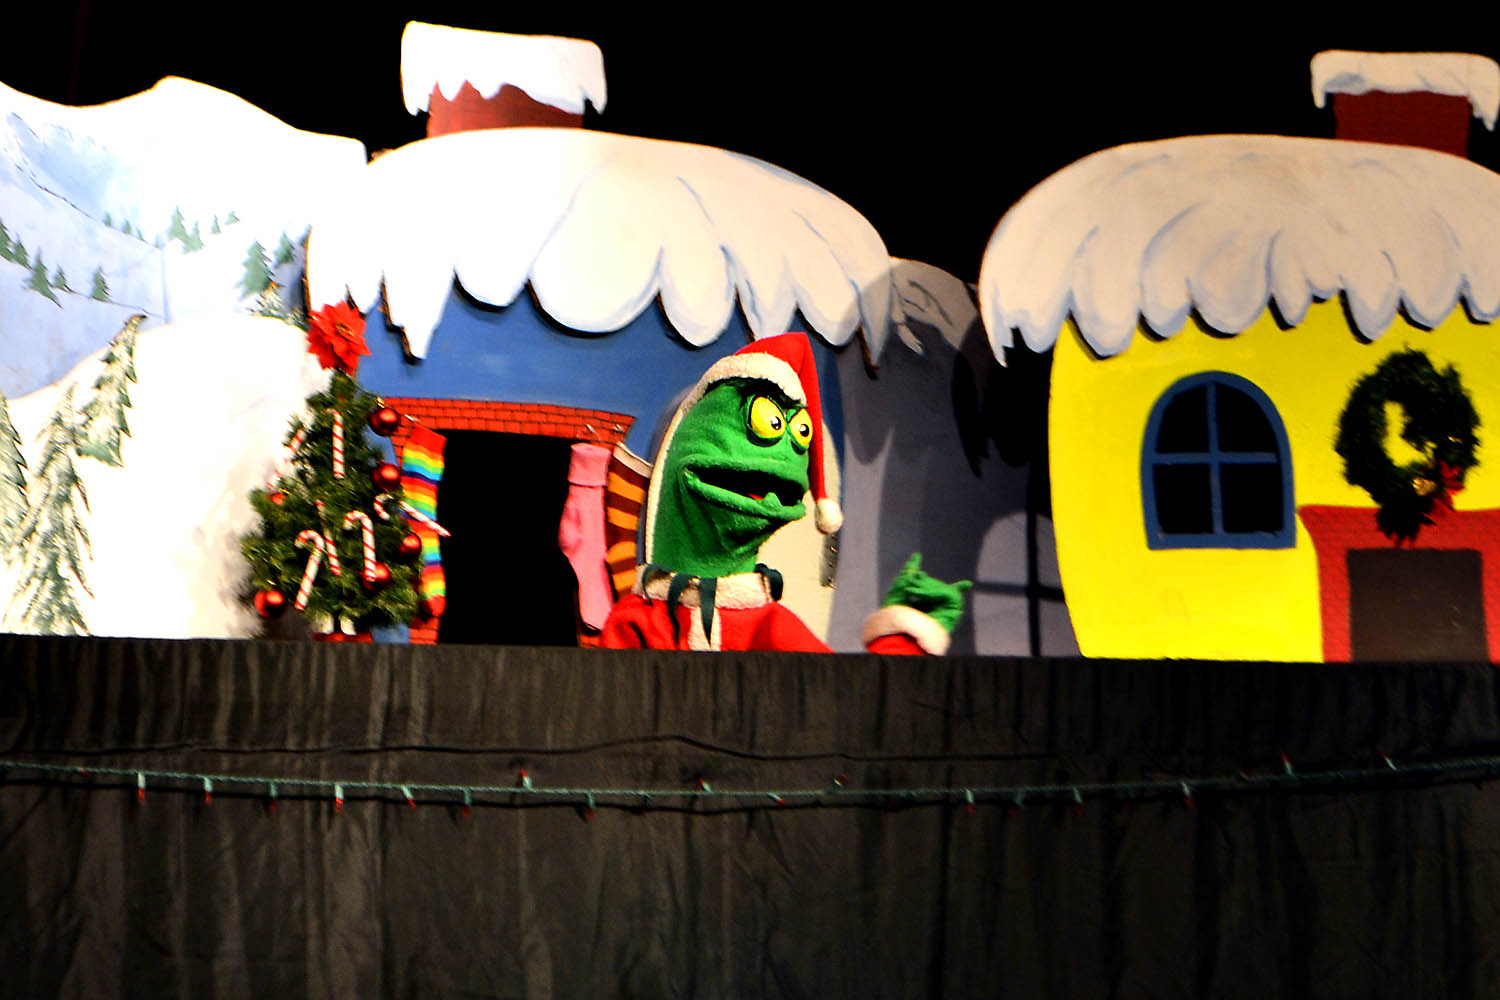 The Grinch, performed by the Frogtown Mountain Puppeteers